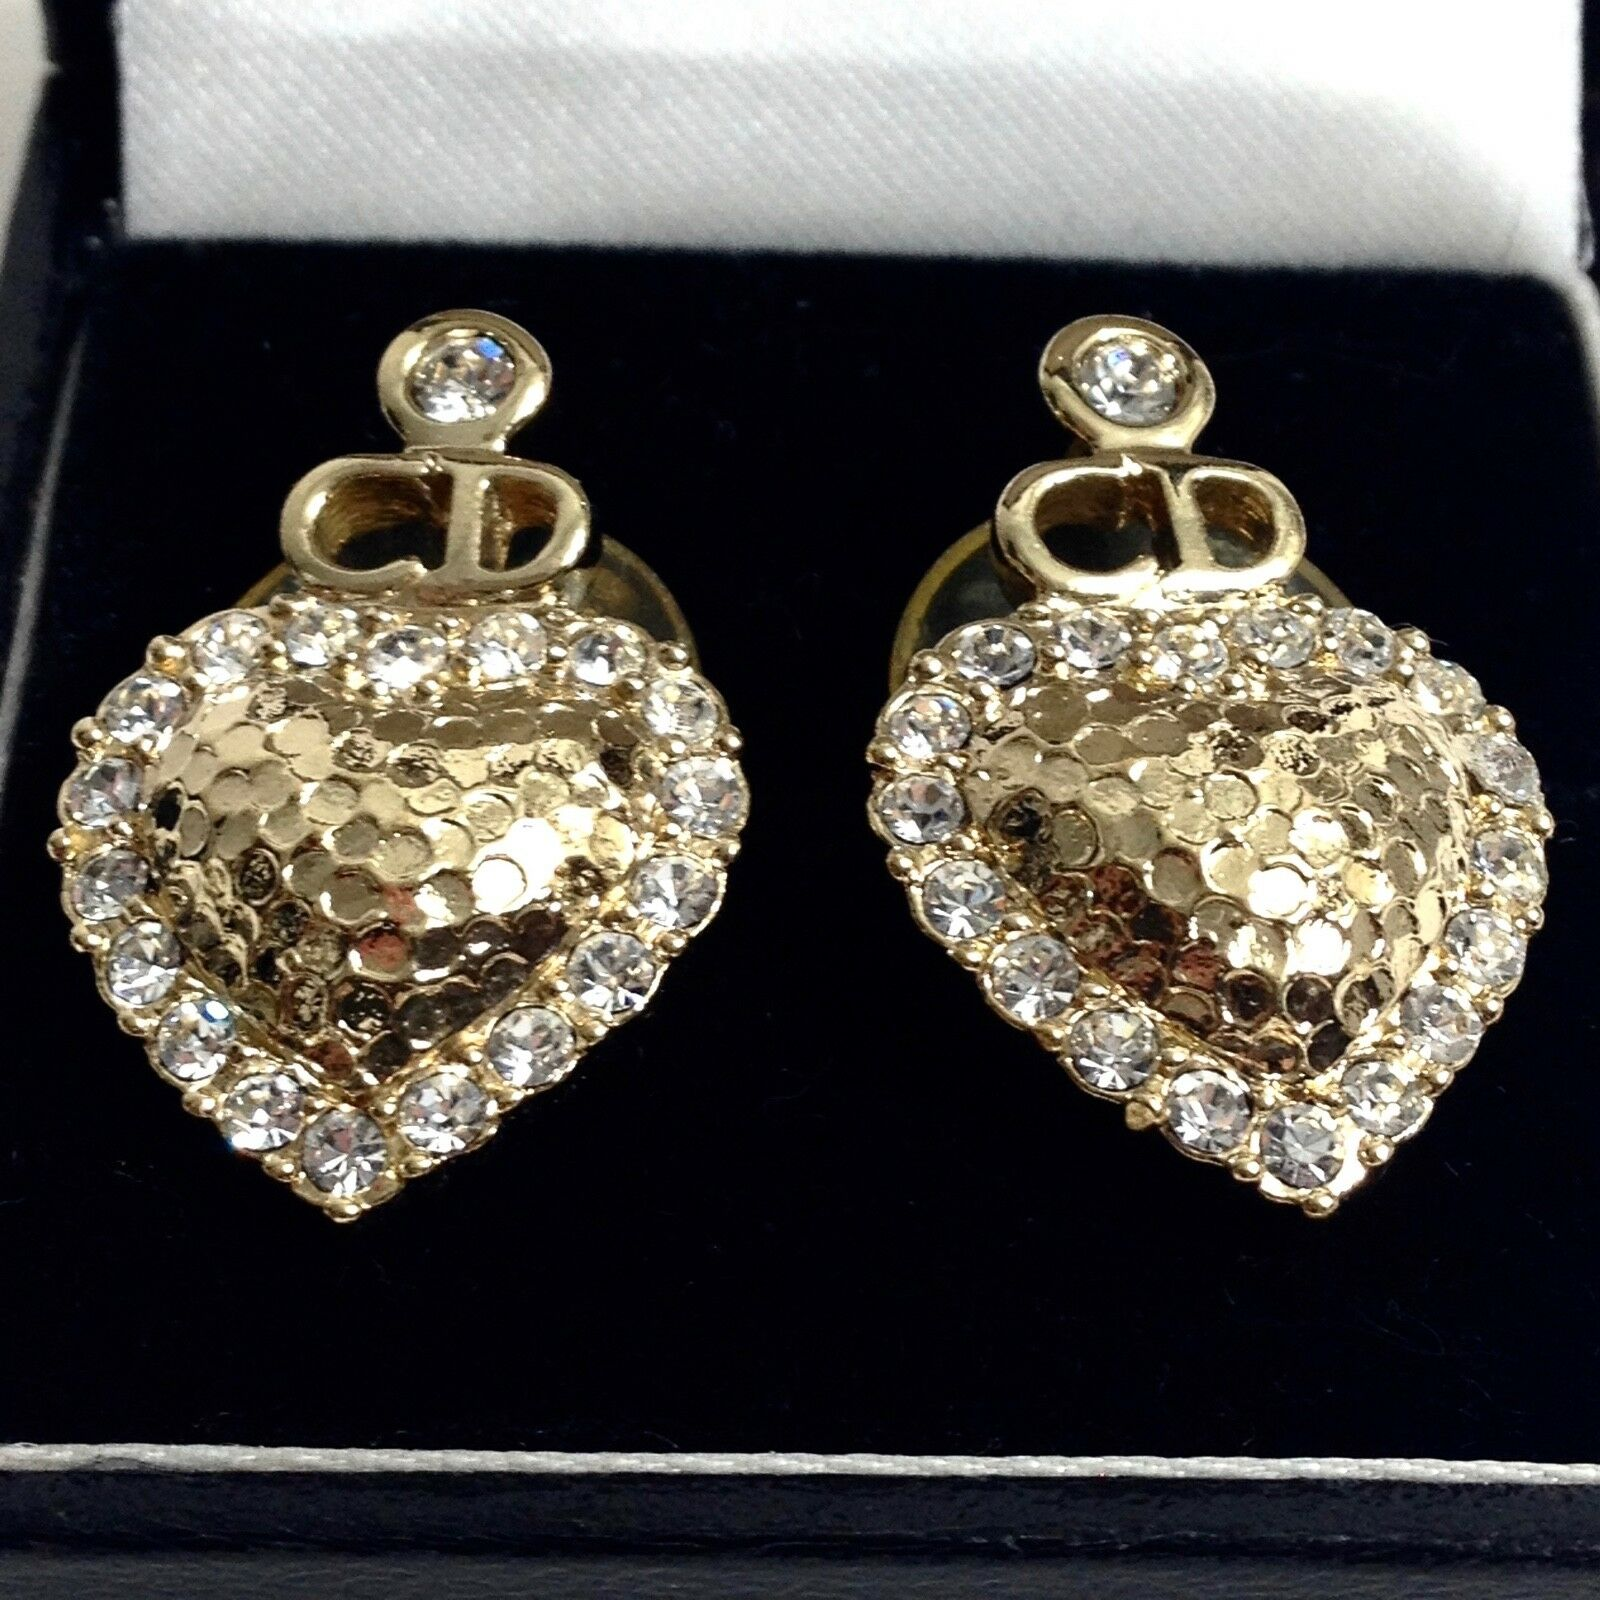 Christian Dior gold and swarovsky crystal heart earrings